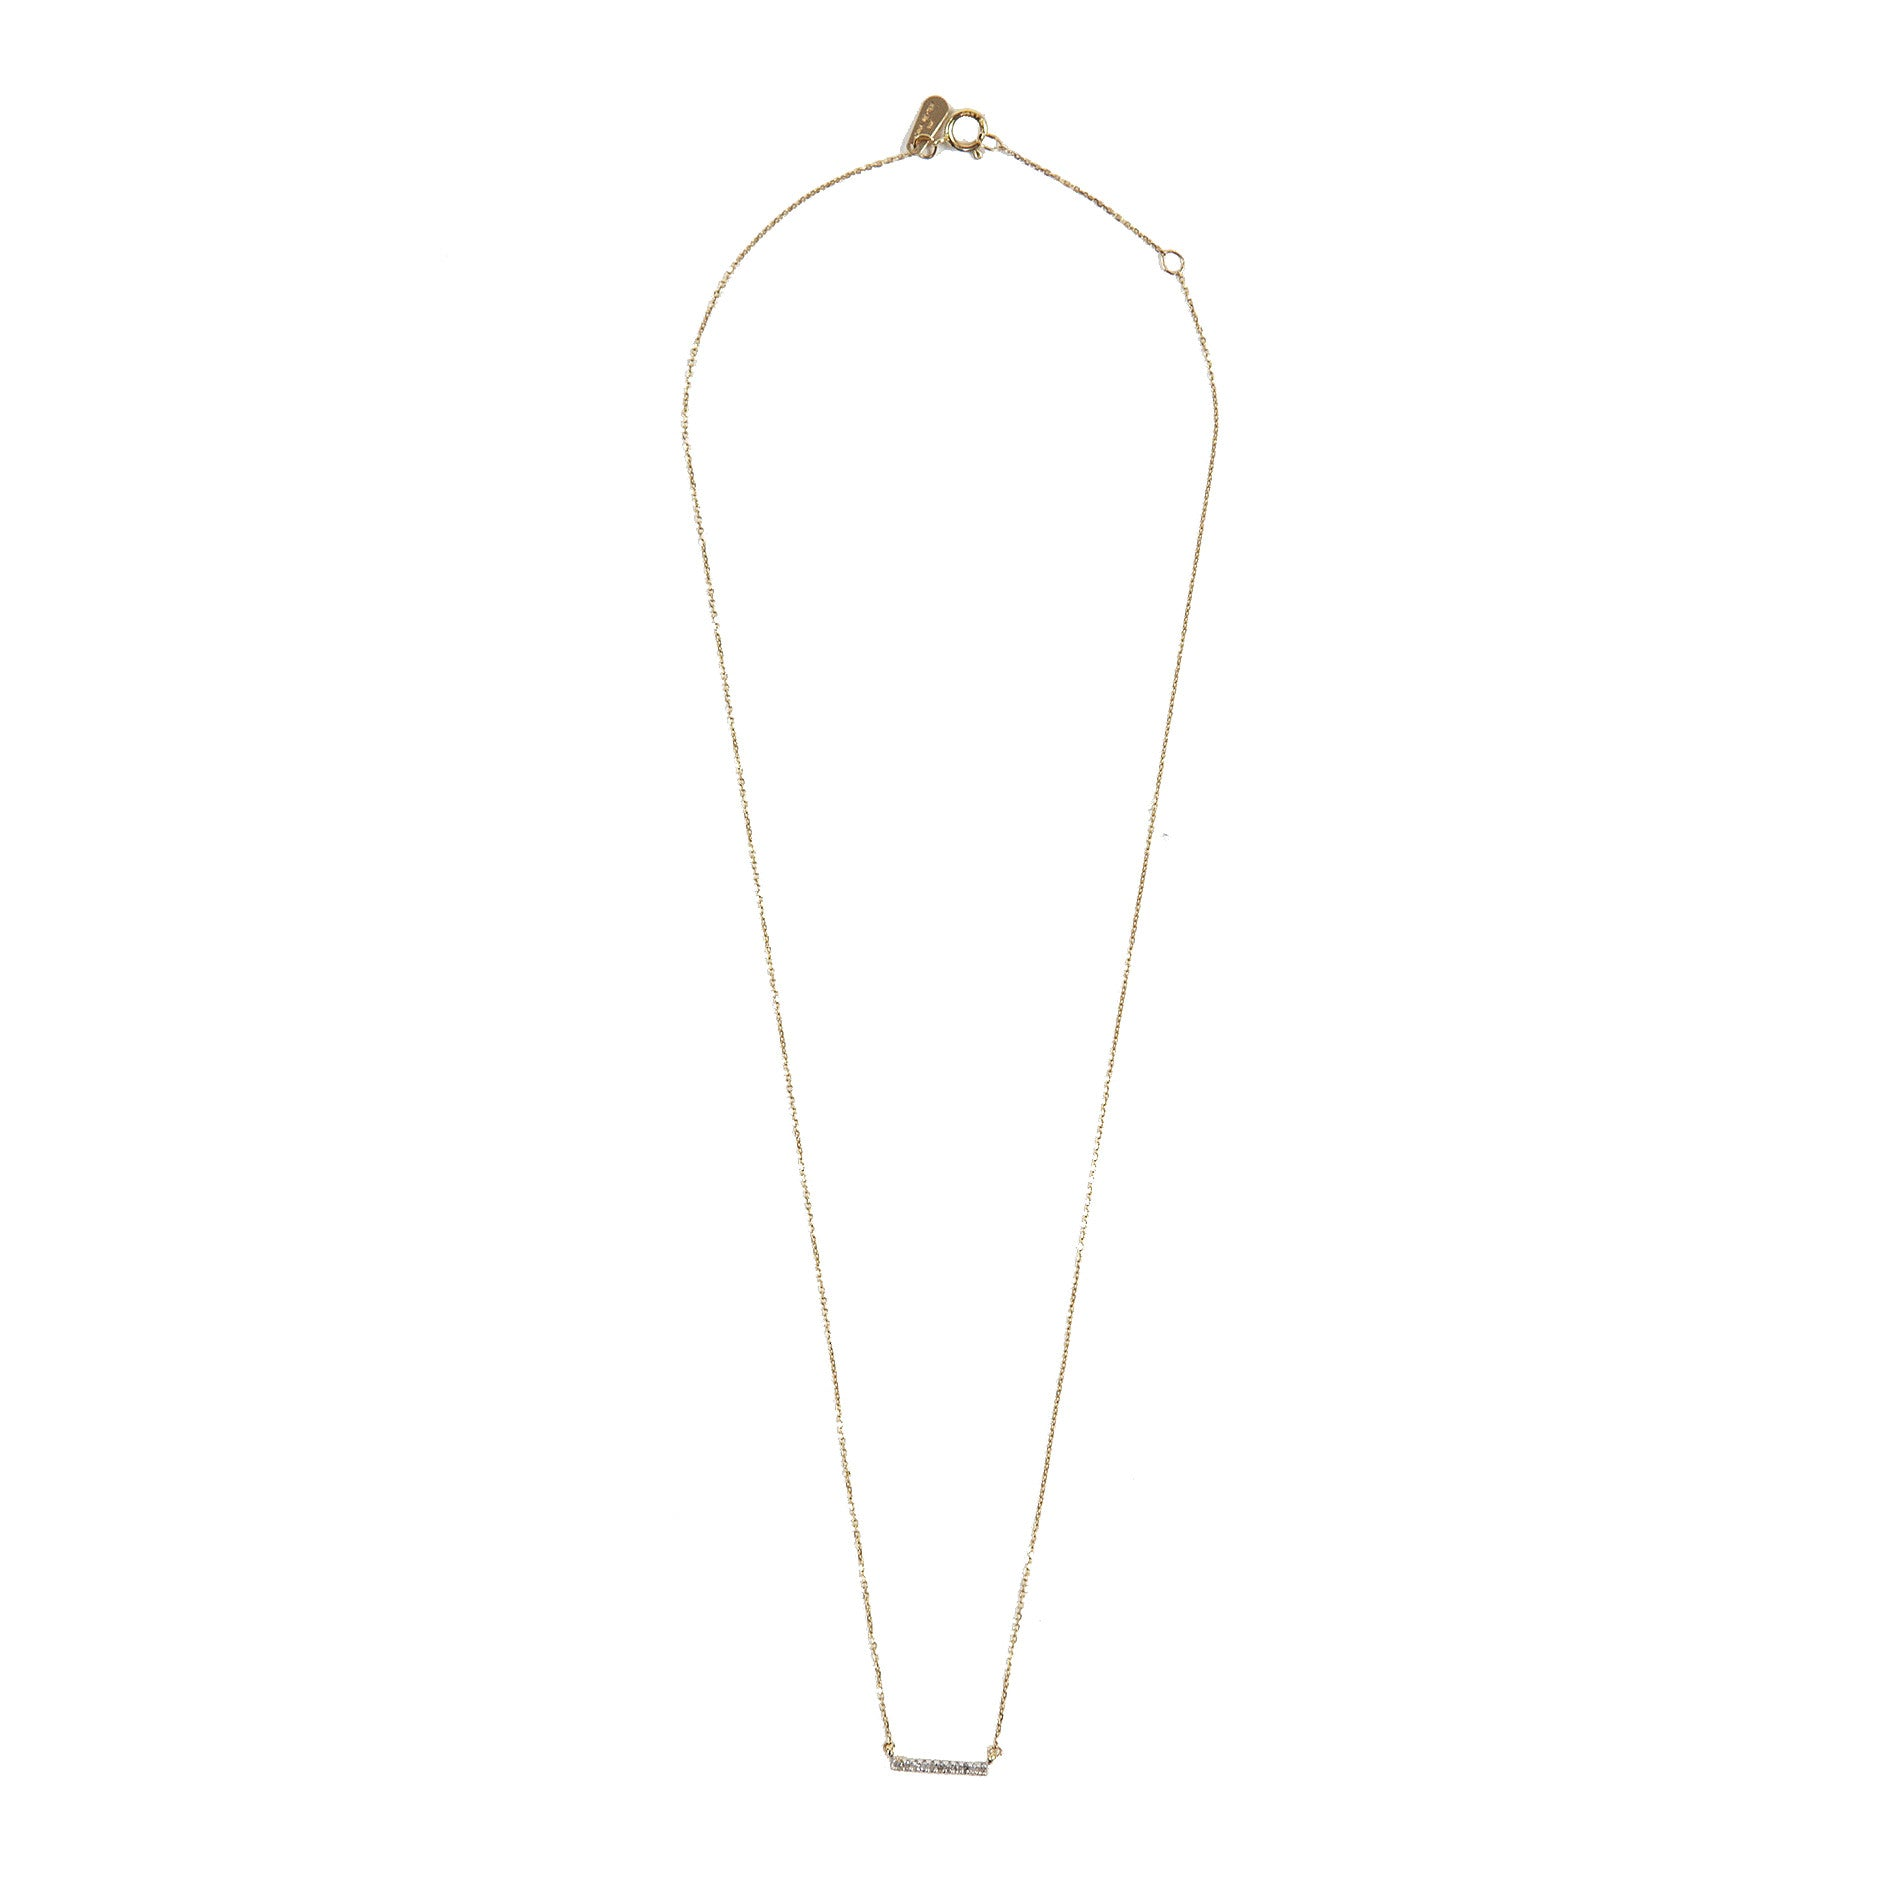 Adina Reyter Pave Diamond Bar Necklace